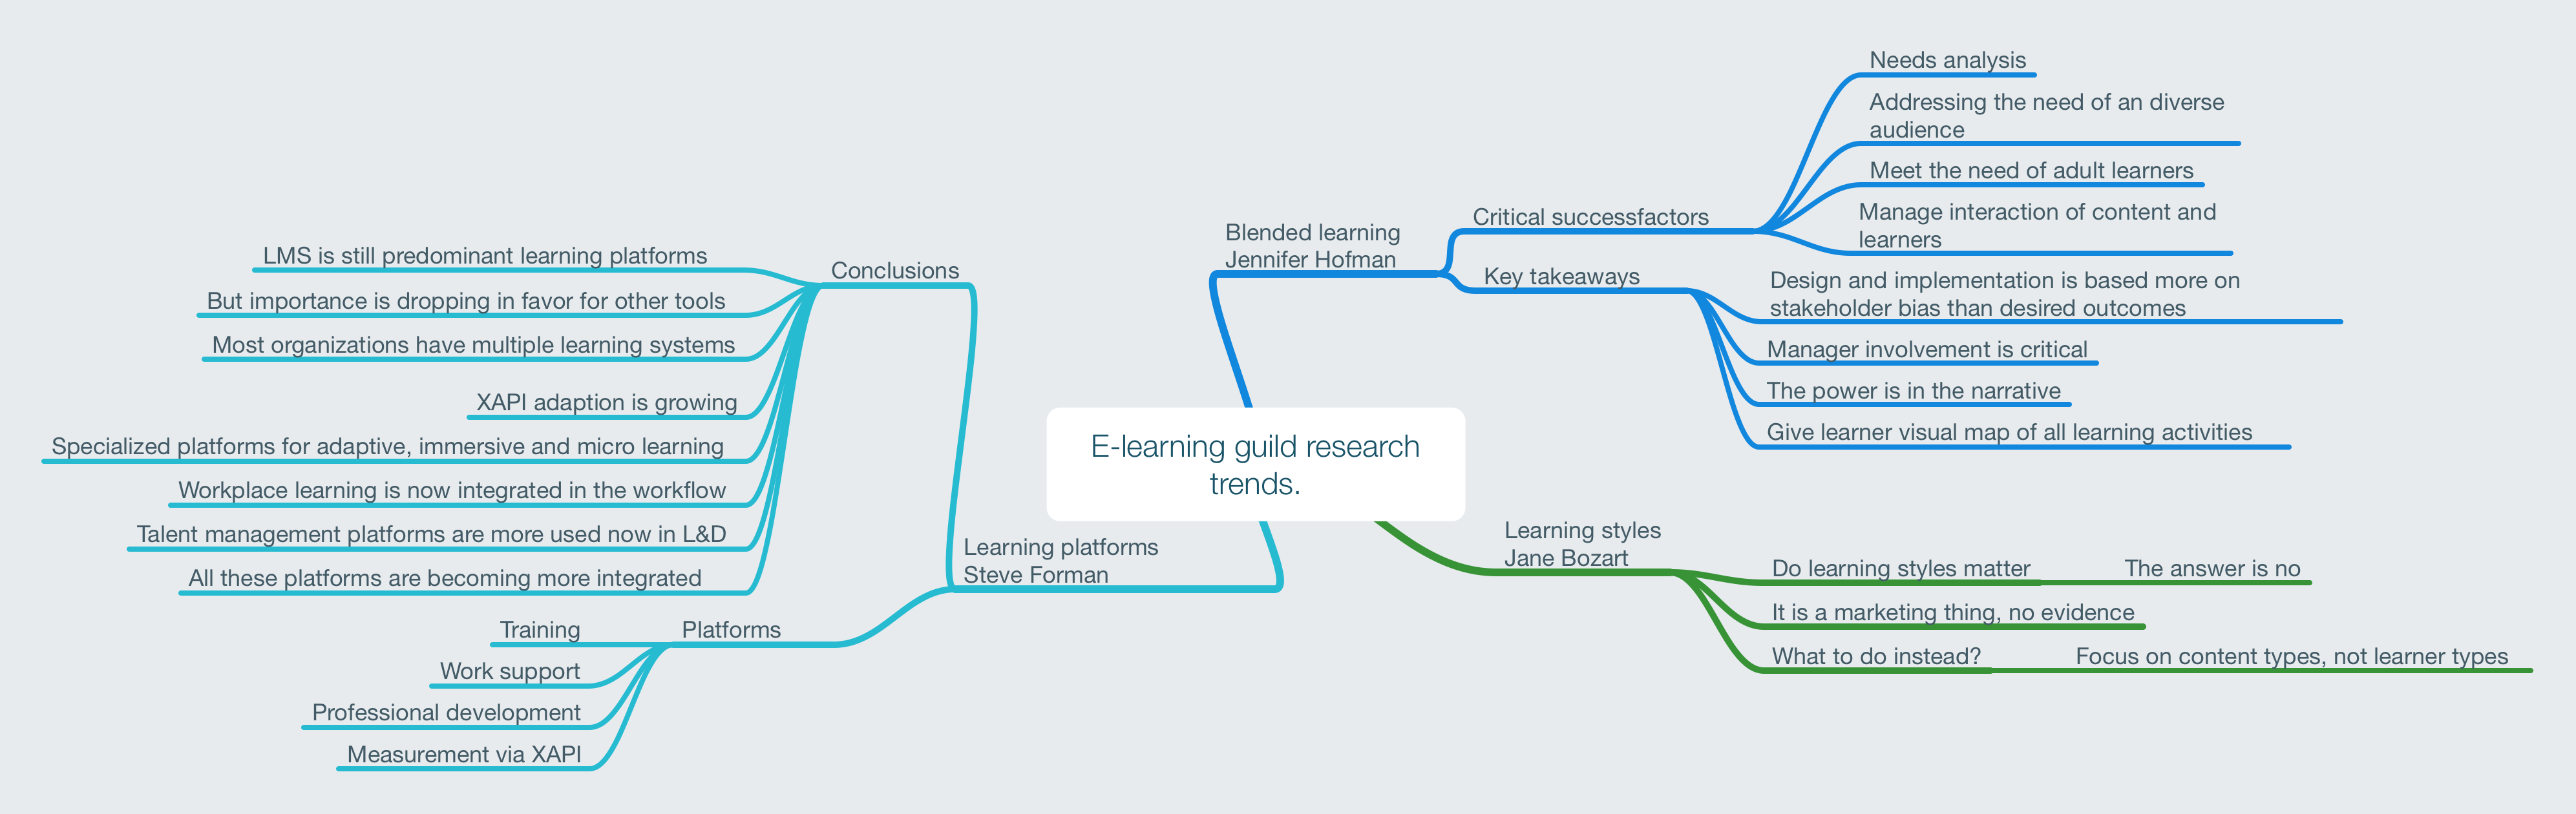 E-learning guild research trends.png